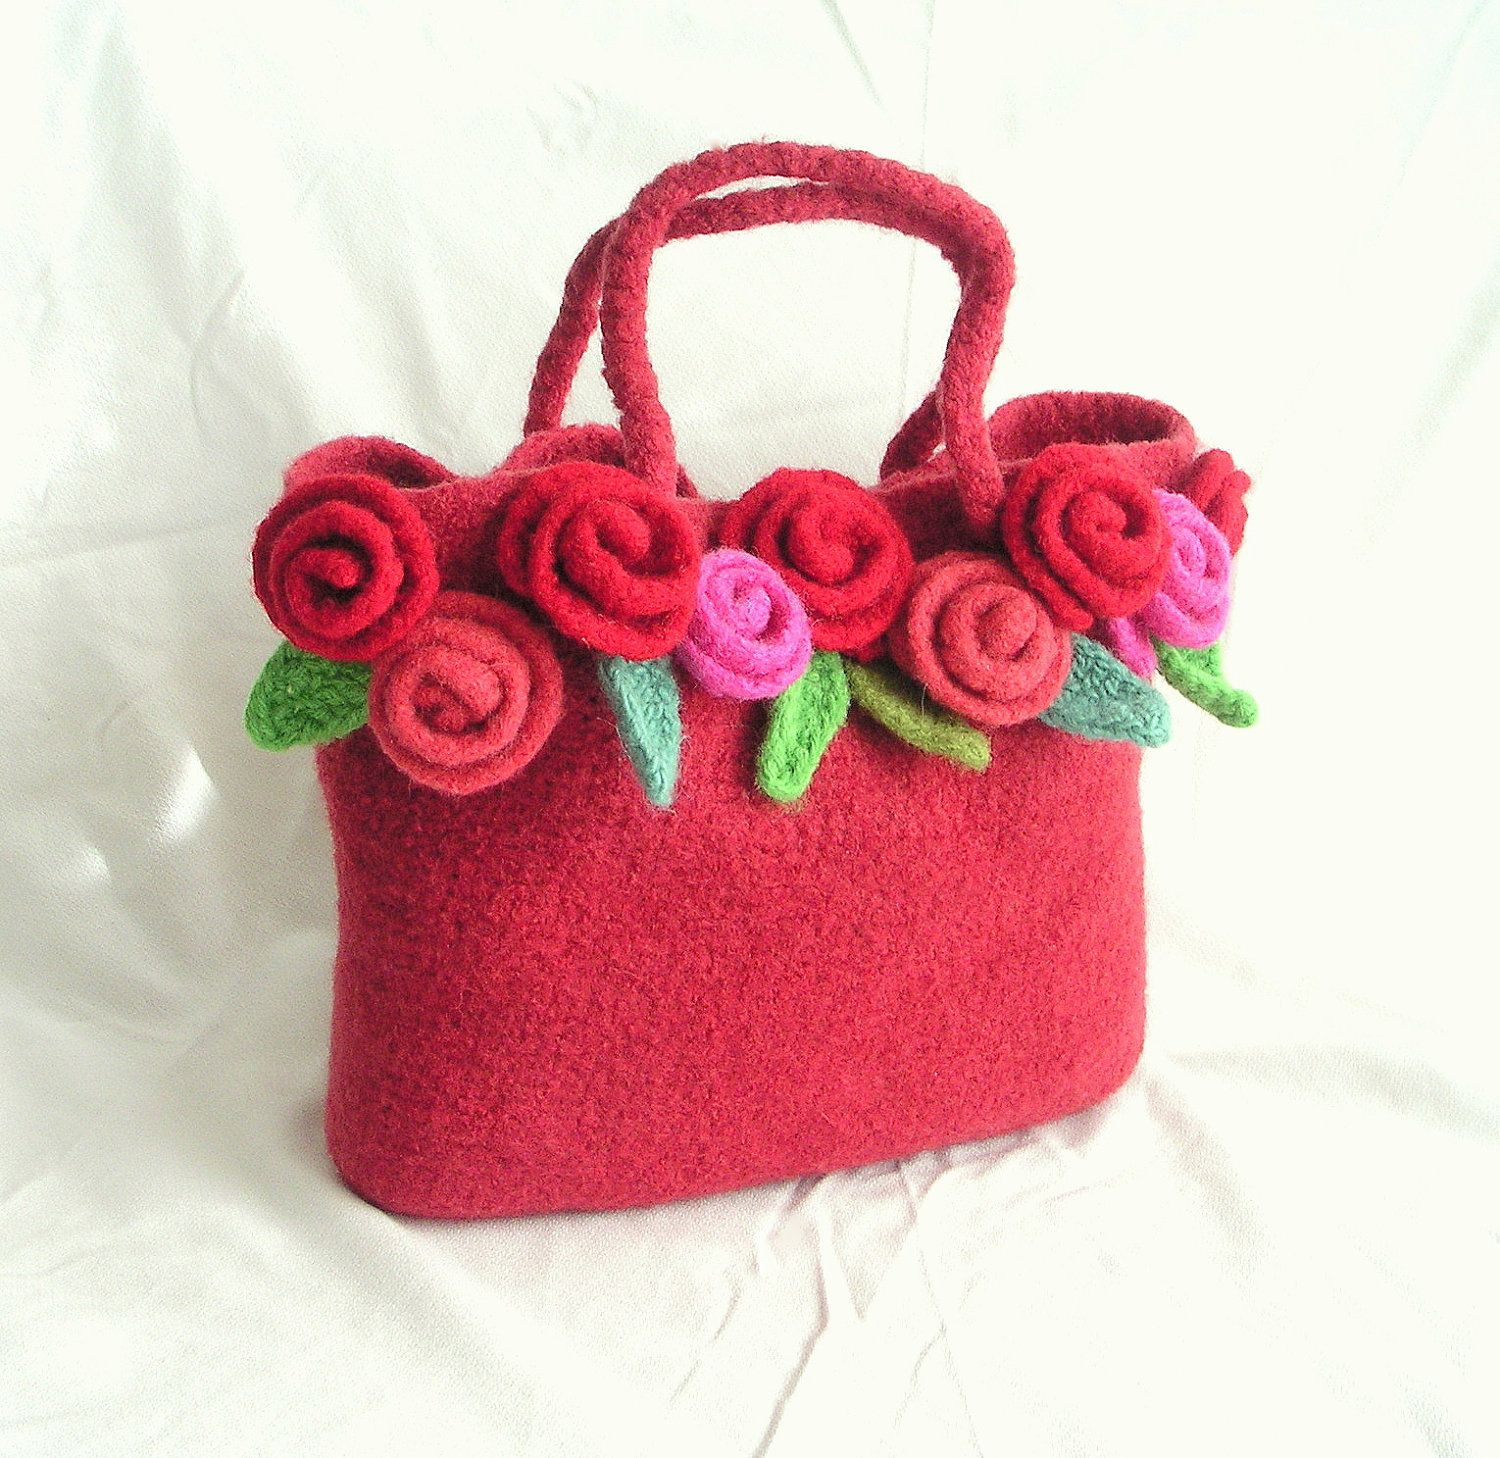 Felted rose bag crochet pattern tutorial pdf crochet bag pattern felted rose bag crochet pattern tutorial pdf crochet bag pattern crochet felt flower pattern bankloansurffo Gallery